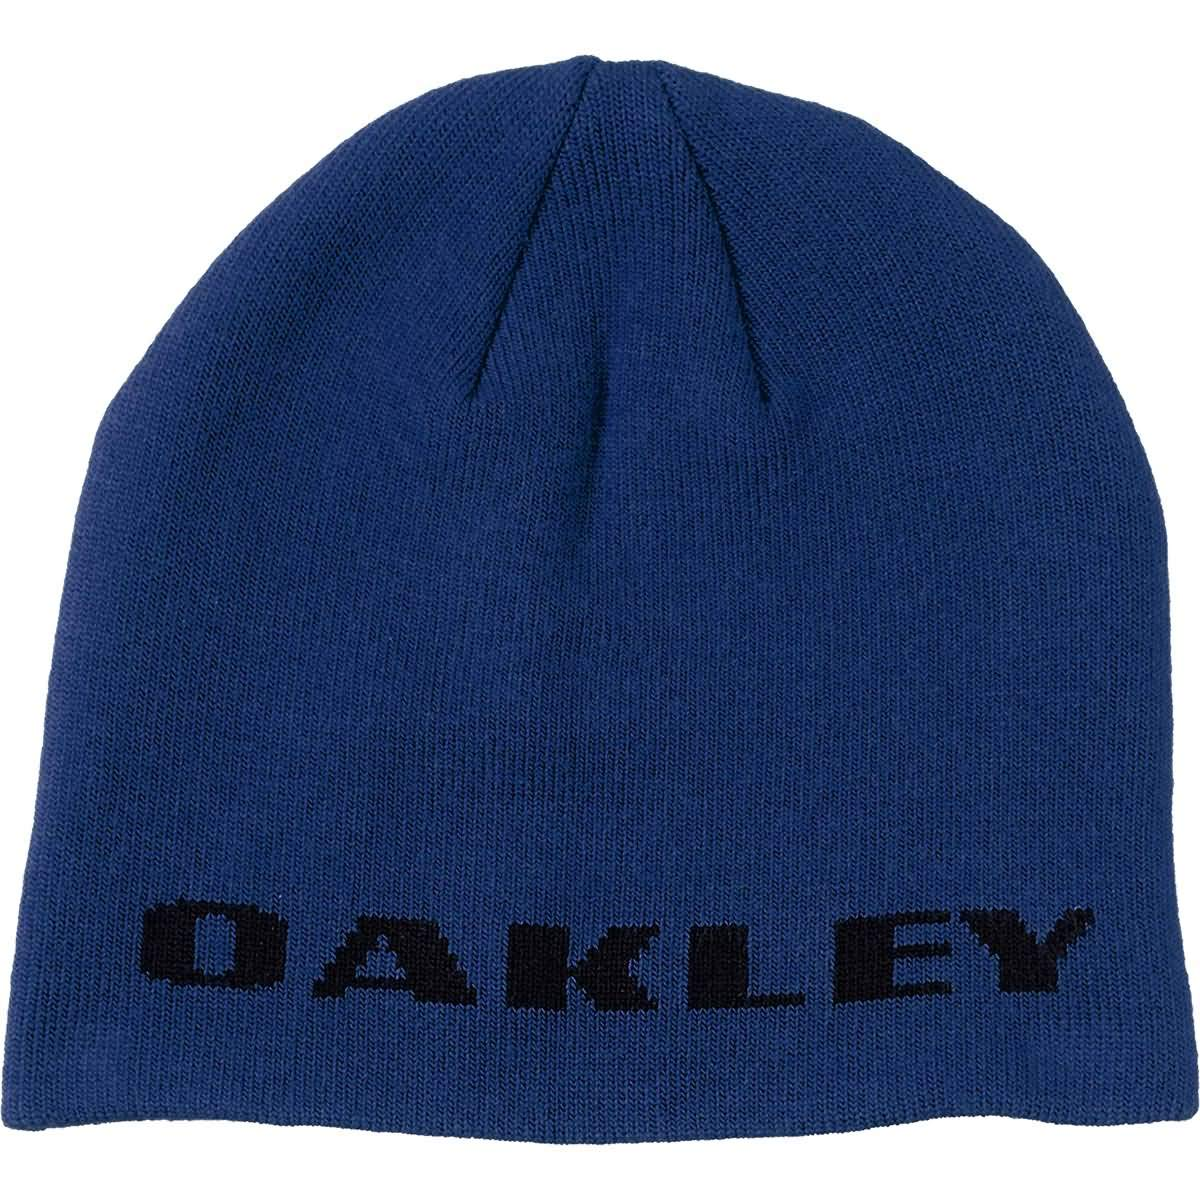 Oakley Men's Rockslide Beanie Hats,One Size,Dark Blue